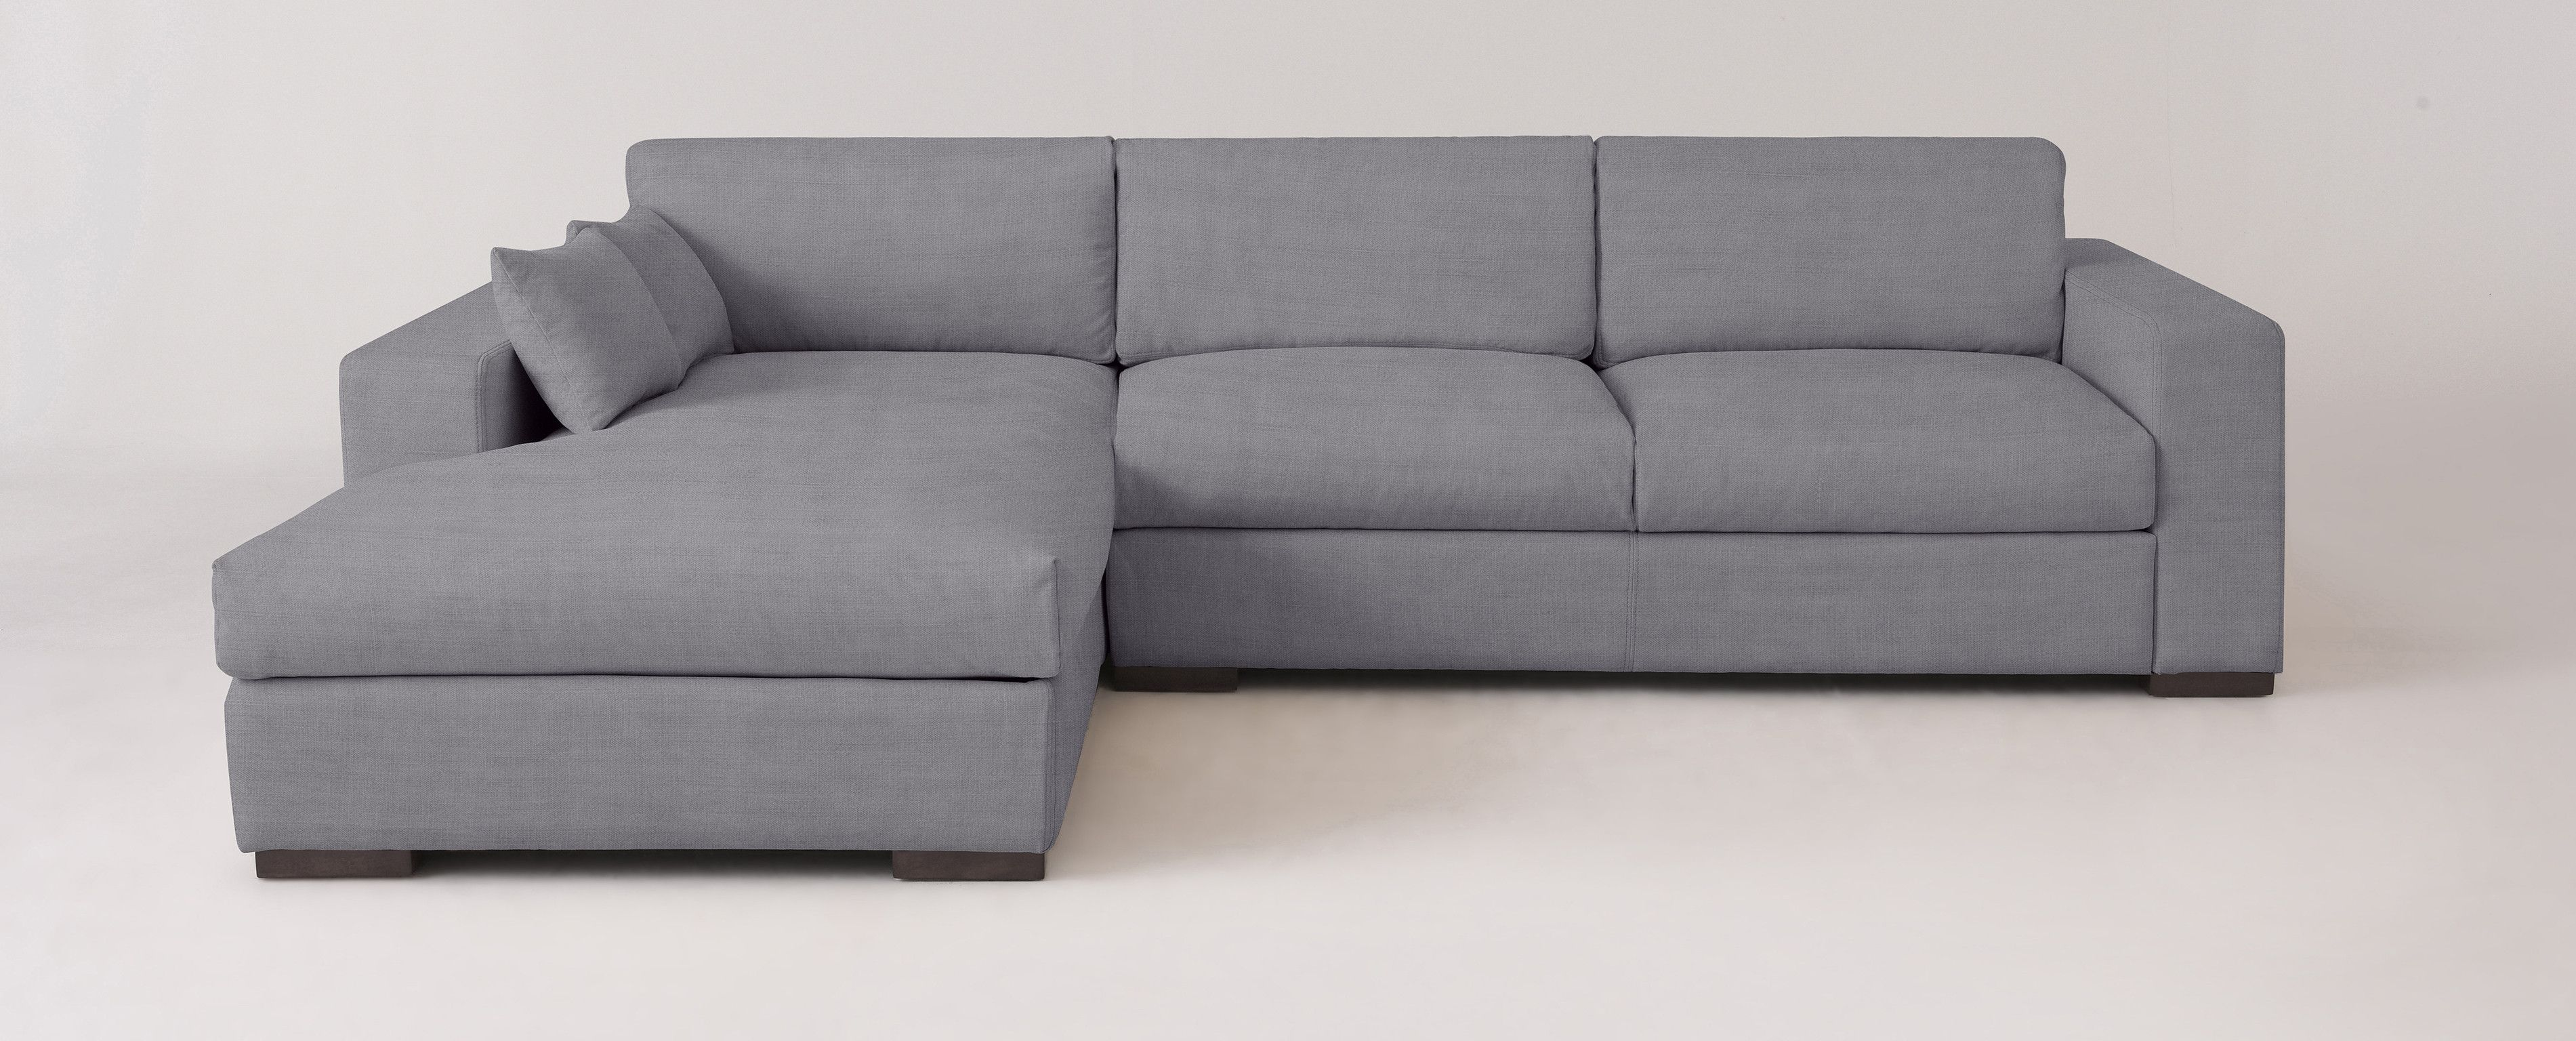 Aberdeen Left Arm Facing L Sectional Corner Sectional Fabric